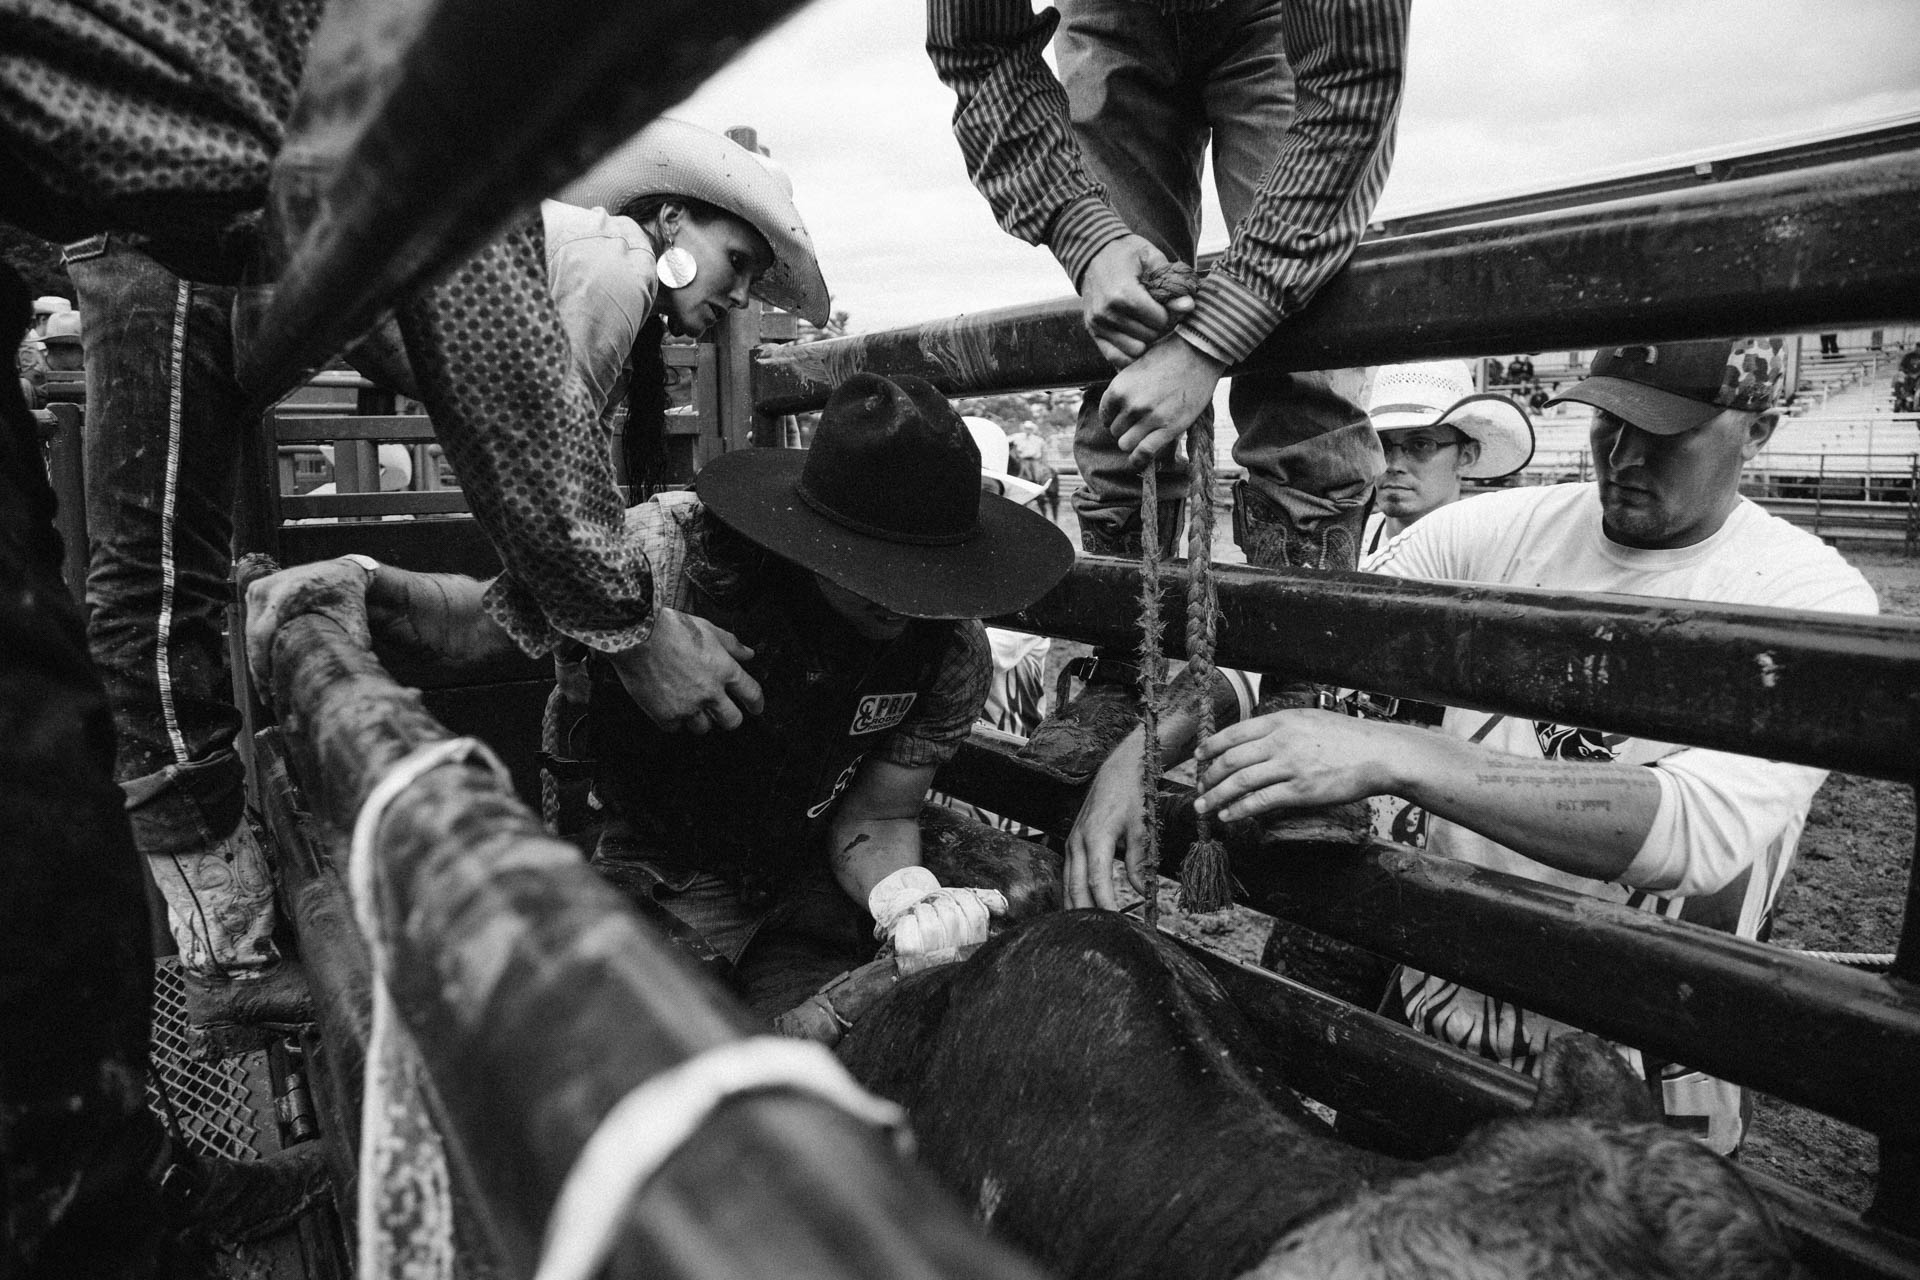 bull-rider-gets-strapped-on-bull-in-chute-black-cowboy-hat-black-river-falls-wi-rice-bull-riding-a4816